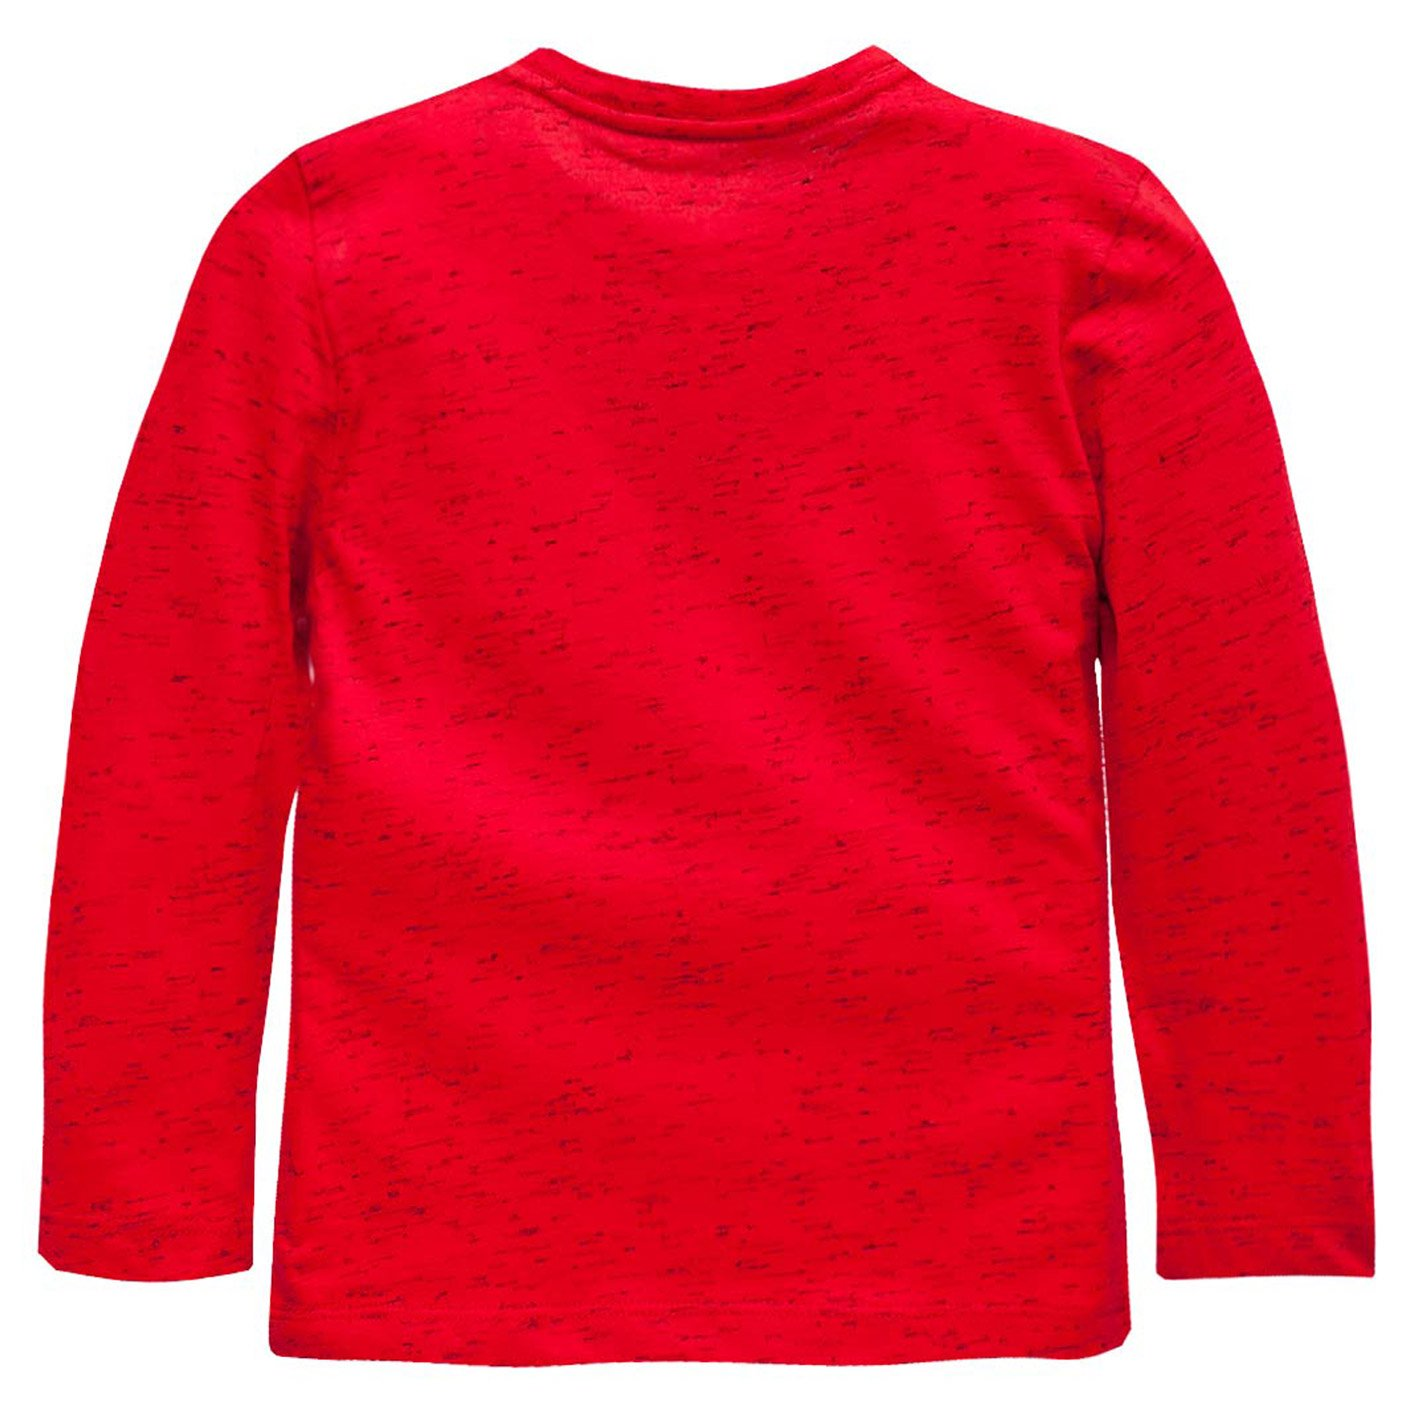 Amazon.com: OFFCORSS Long Sleeve Tshirt For Boys Camiseta Para Niños Manga Larga Red 2T: Clothing